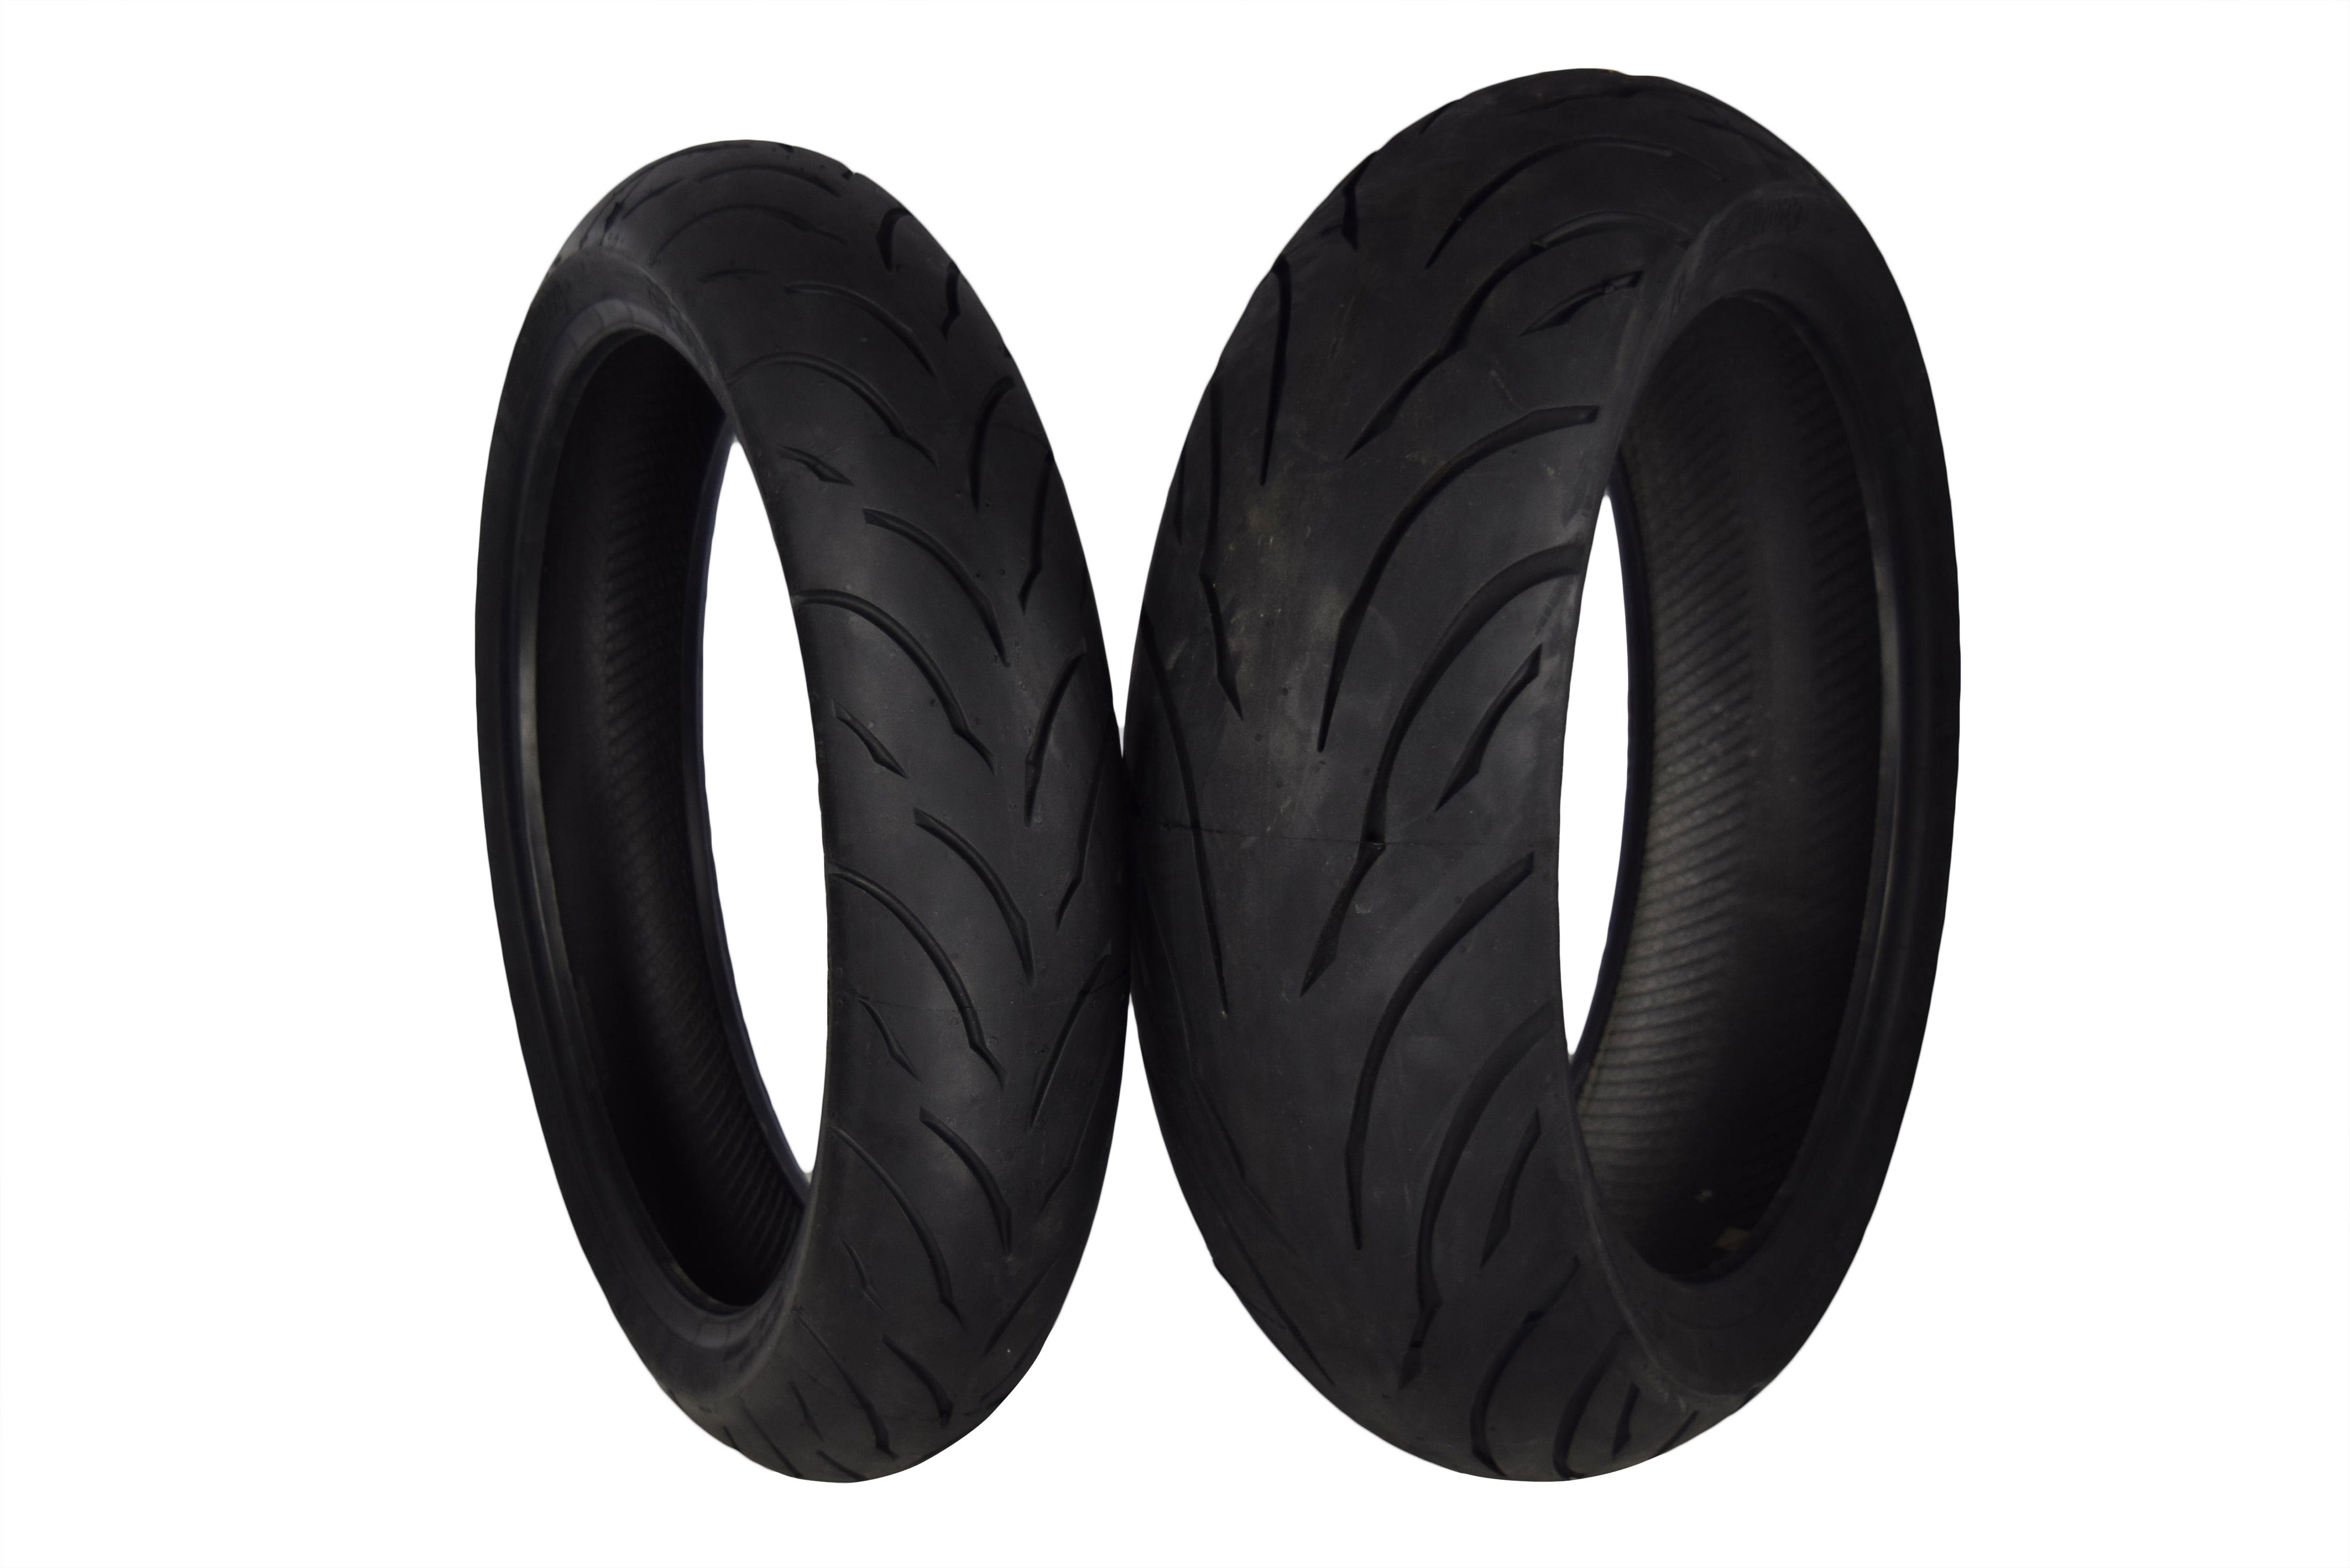 Continental-Motorcycle-Tire-2-set-120-70-17-Front-180-55-17-Rear-image-1